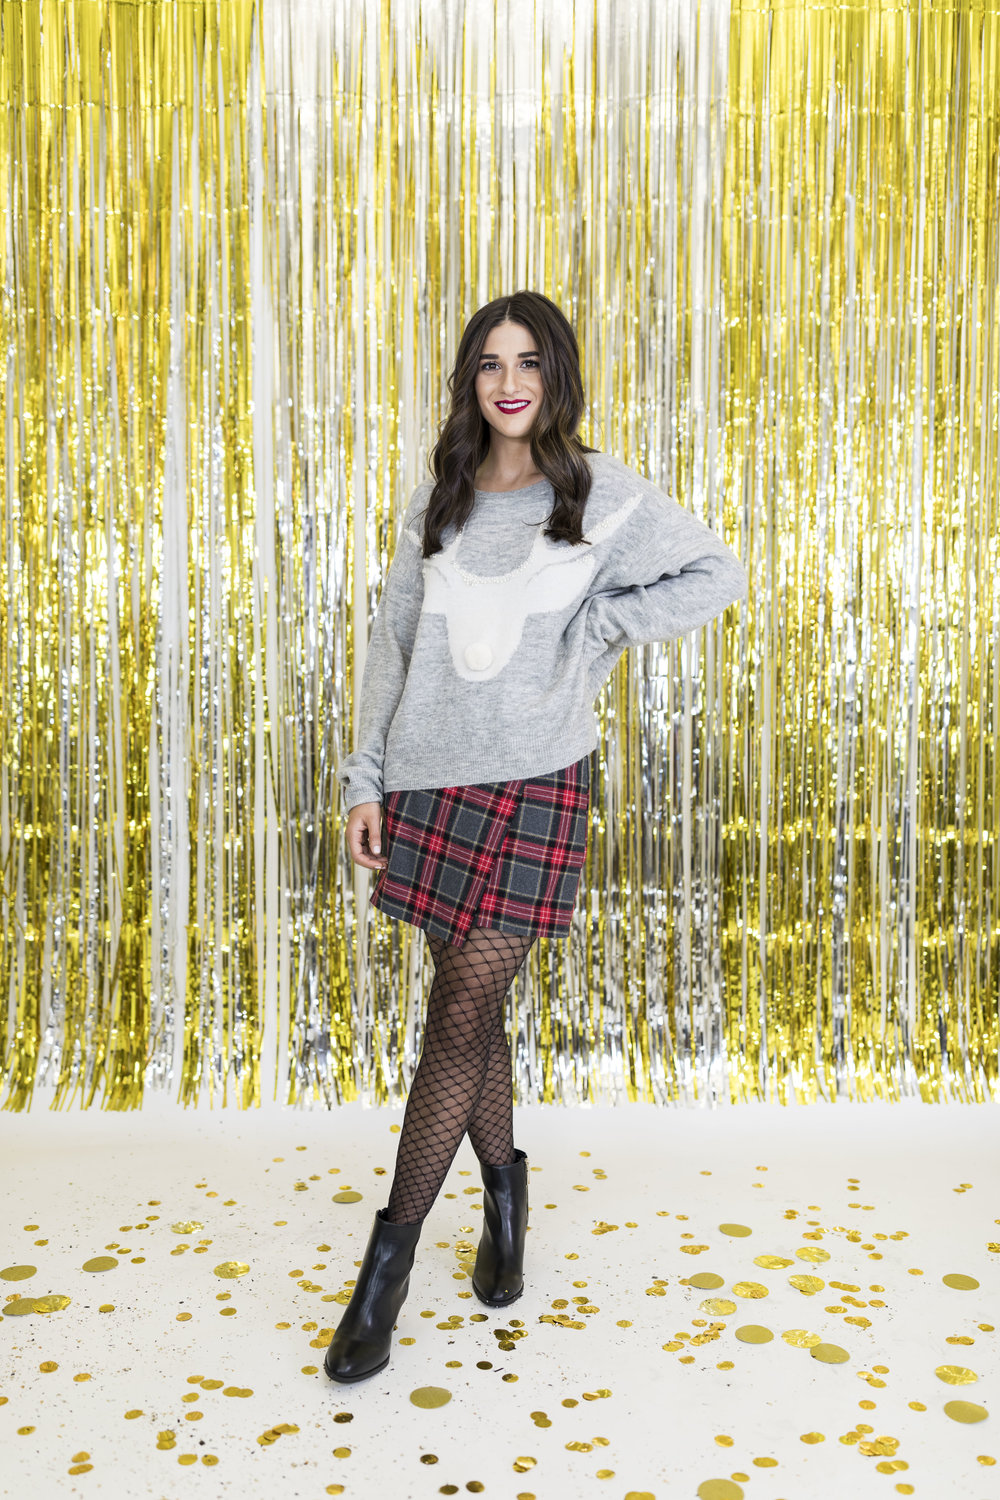 H&M Holiday Video Collab Esther Santer Fashion Blog NYC Street Style Blogger Outfit OOTD Trendy Confetti Streamers Balloons Presents Gift Wrap Shopping Wear Stylist Photoshoot Studio Plaid Skirt DryBar Hairstyle Friends Girls Lace Accessories Jewelry.jpg